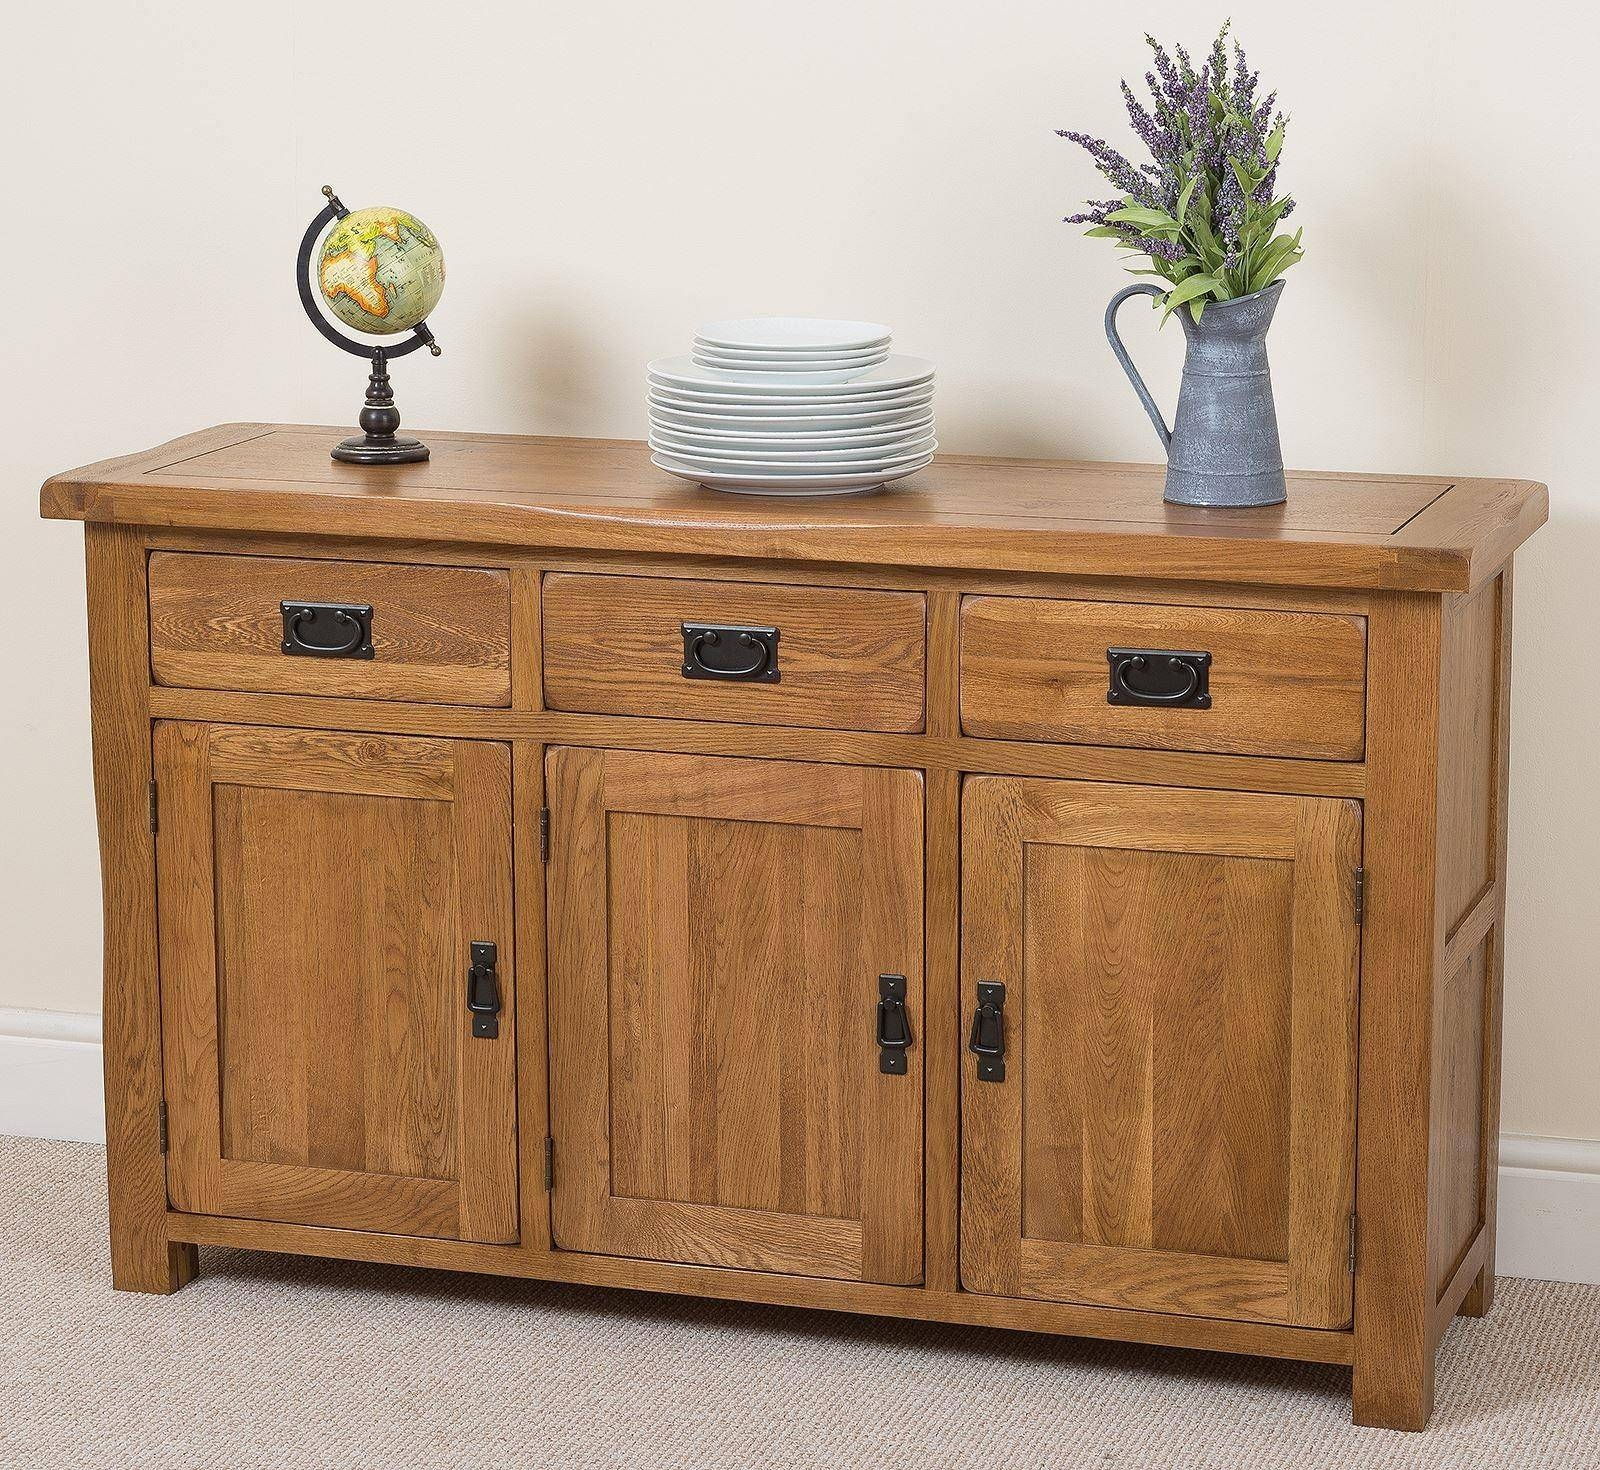 Cotswold Large Oak Sideboard | Free Uk Delivery throughout Solid Oak Sideboards (Image 3 of 15)